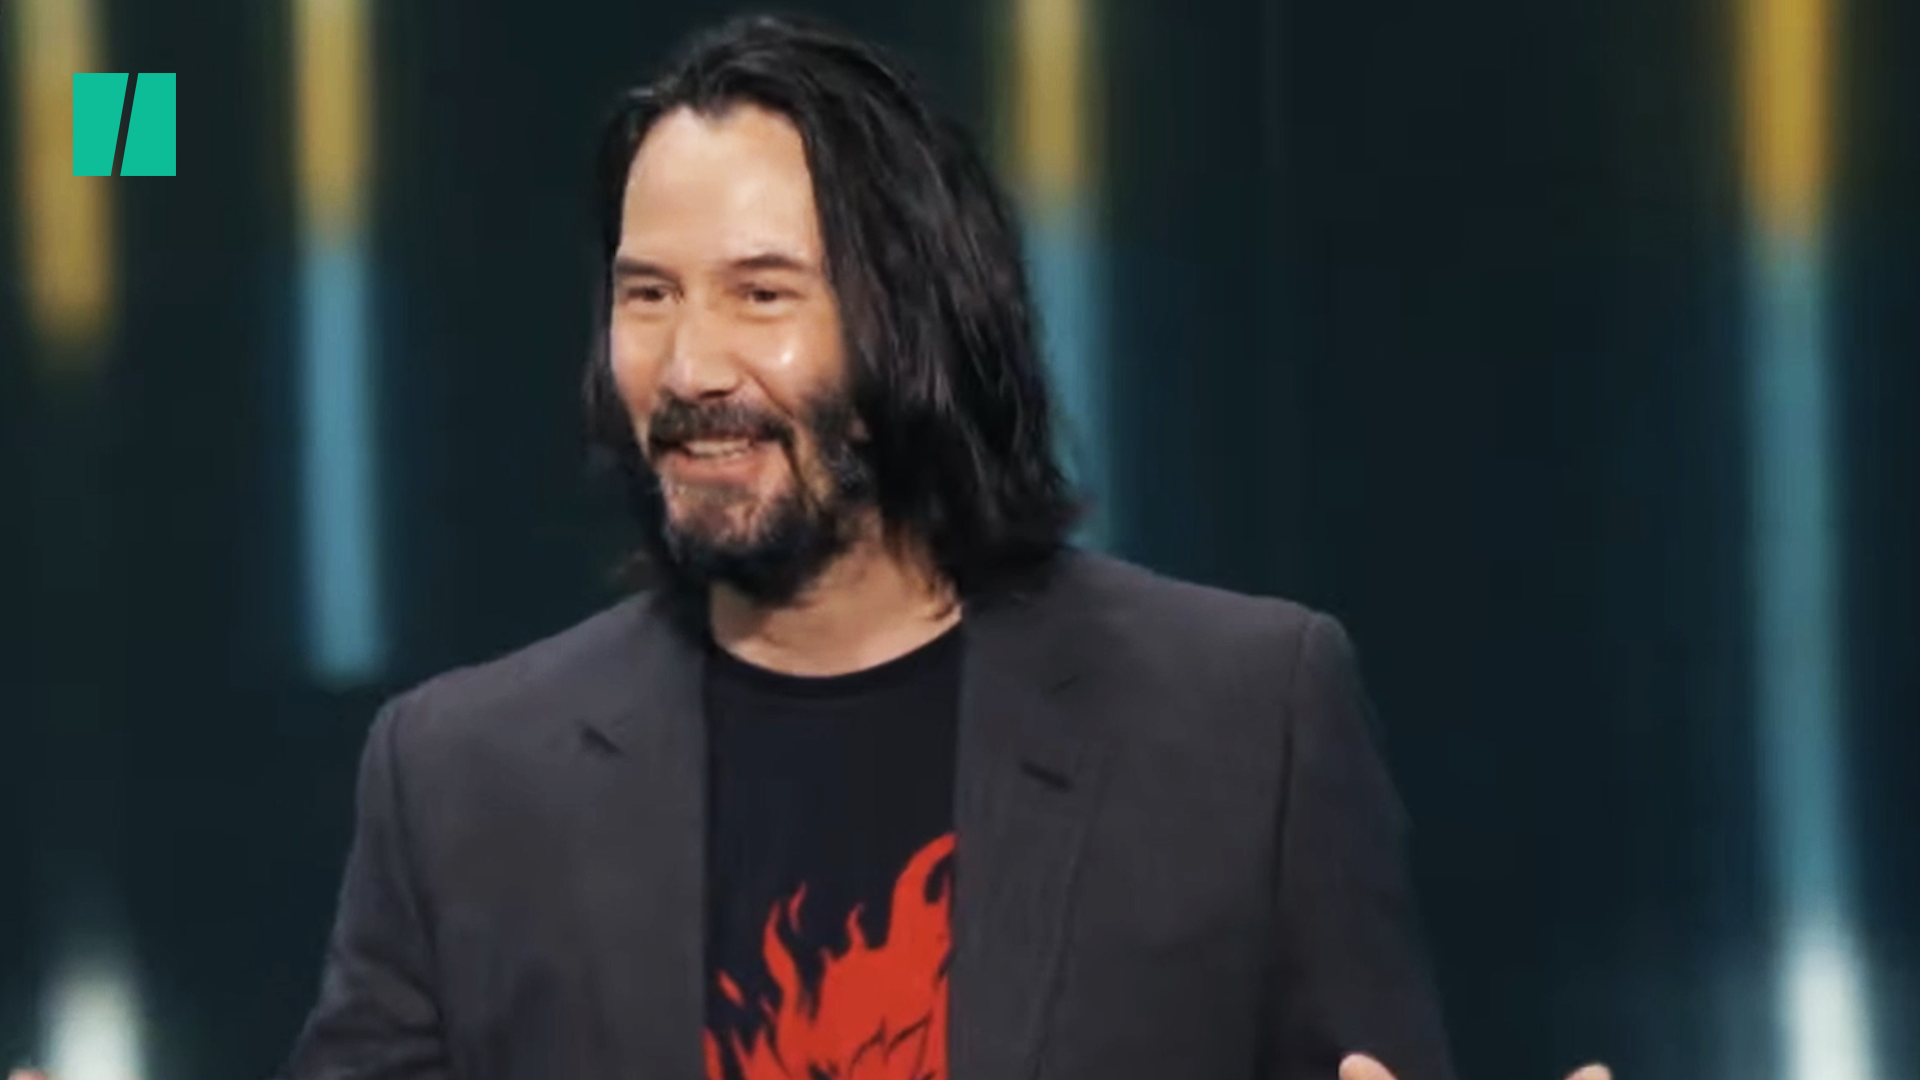 Keanu Reeves Receives Wholesome Heckle